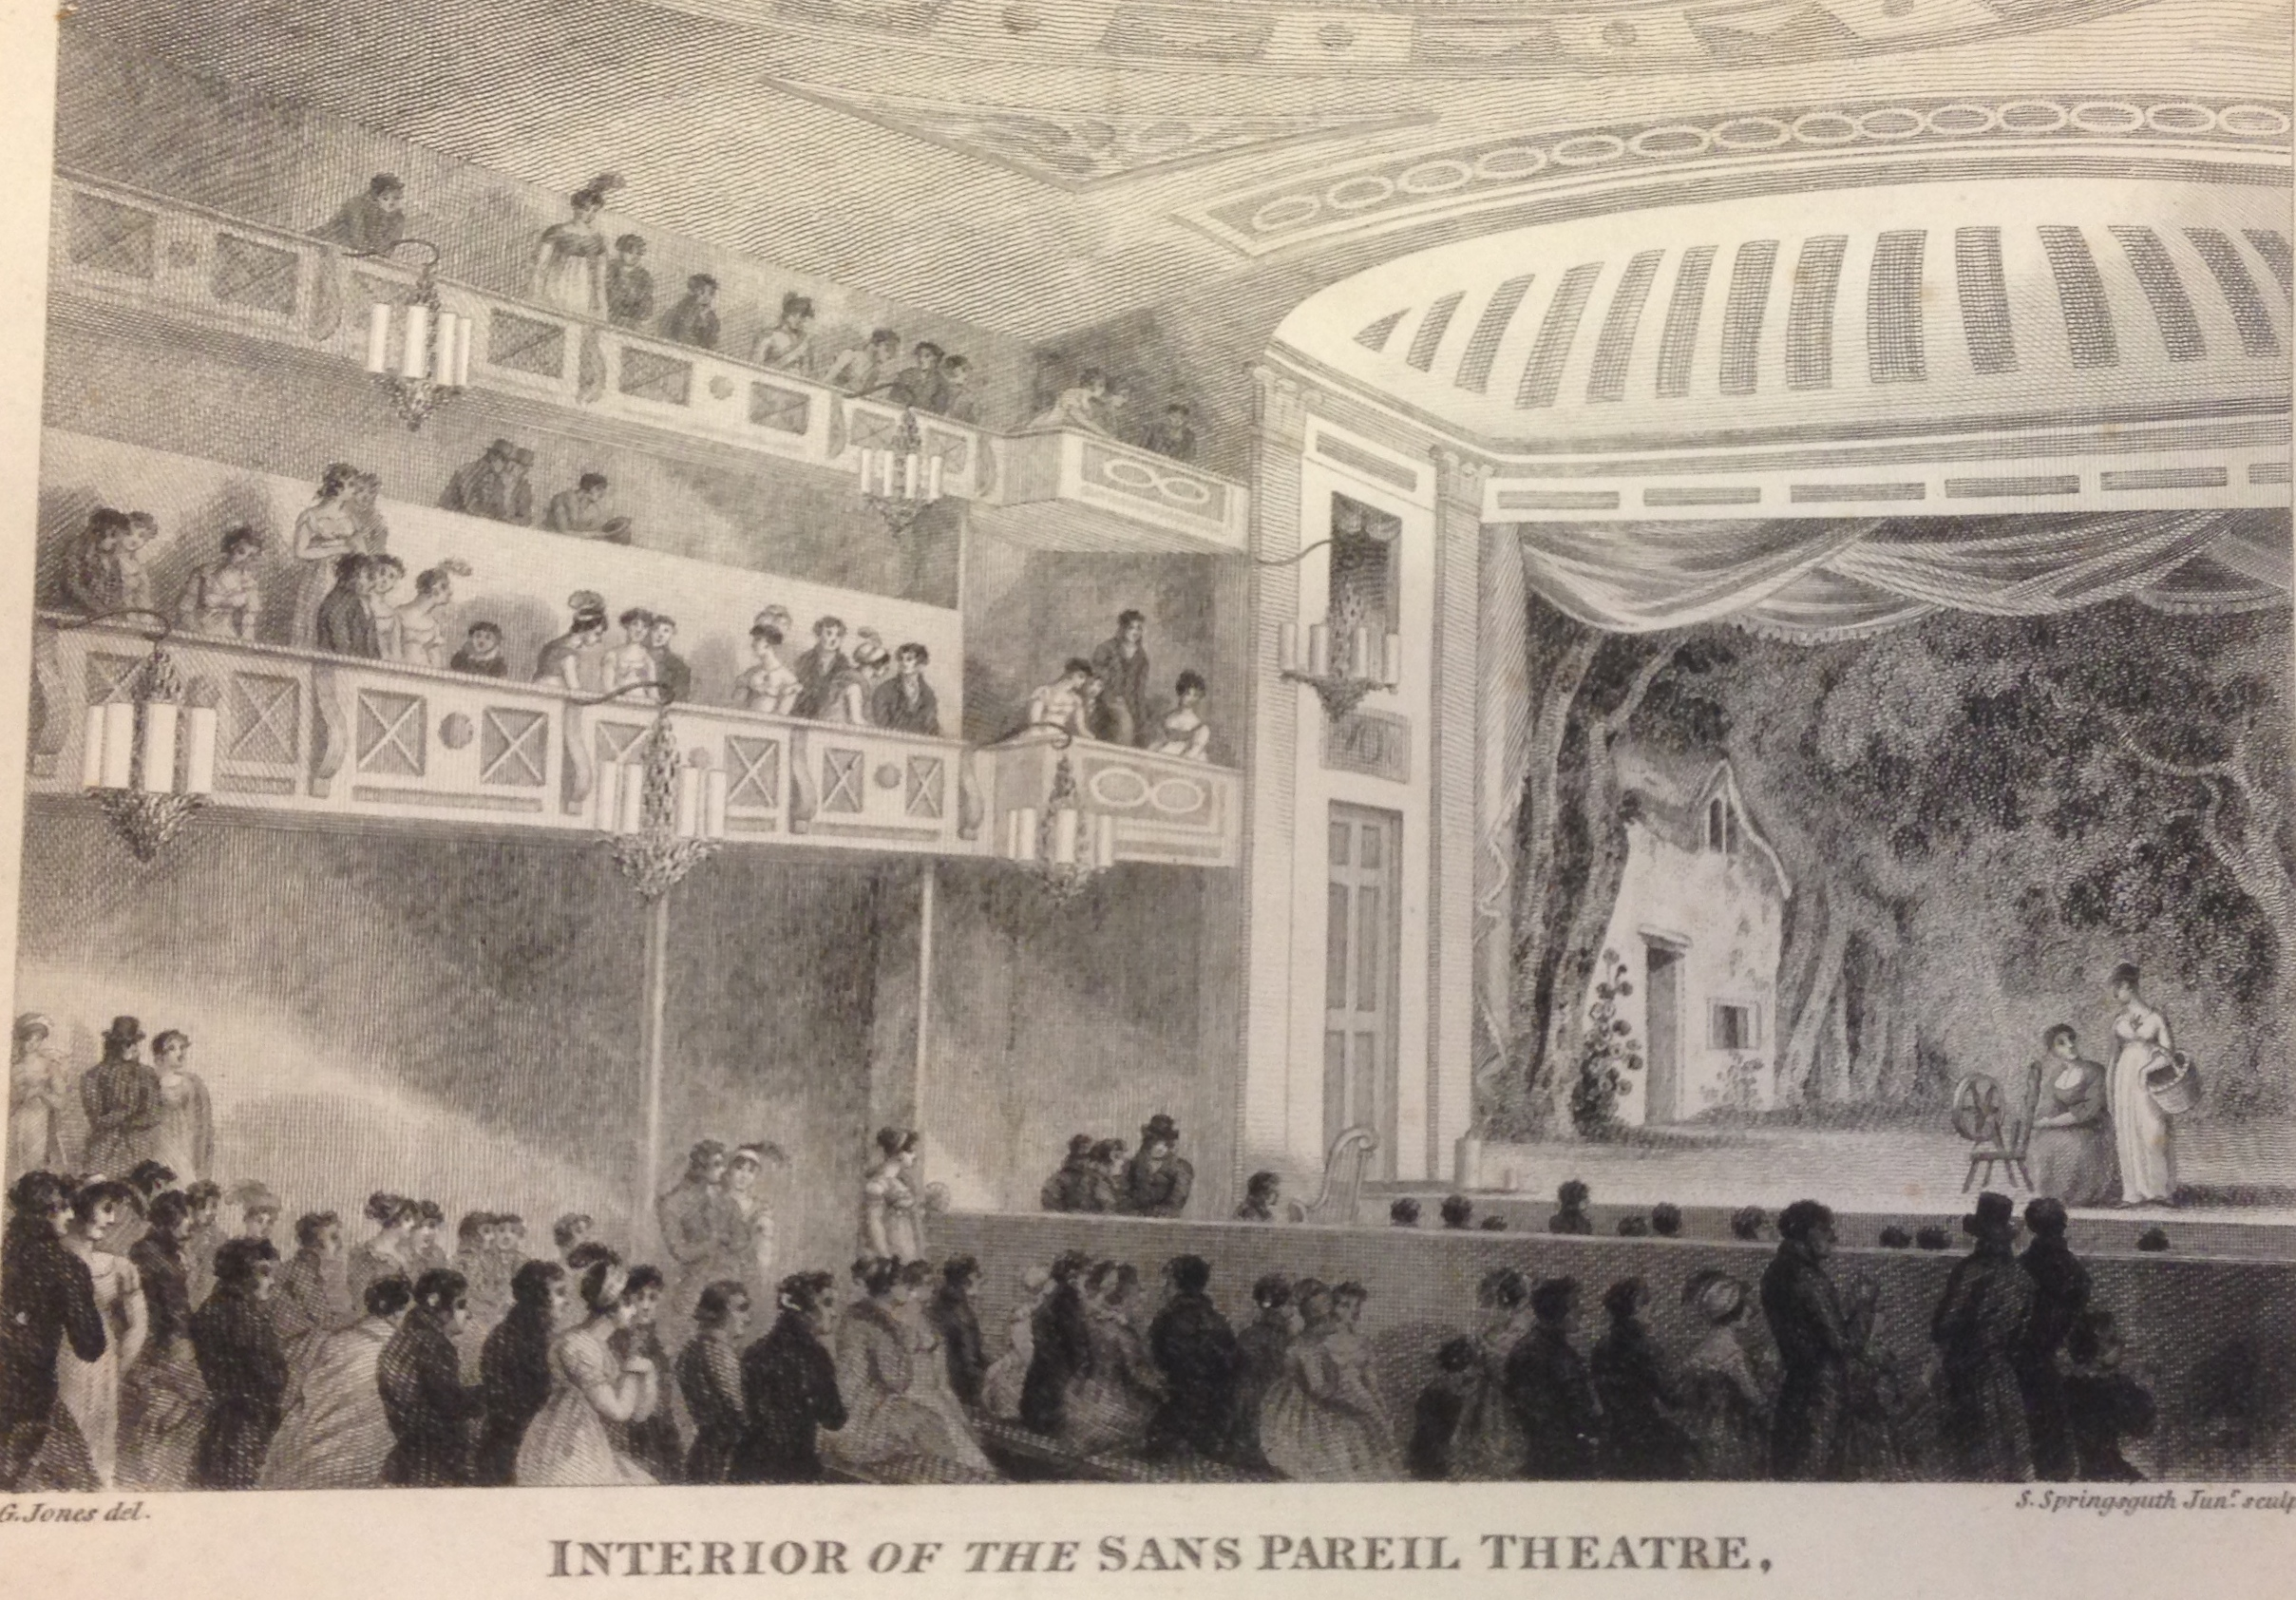 /media/Interior of the Sans Pareil Theatre